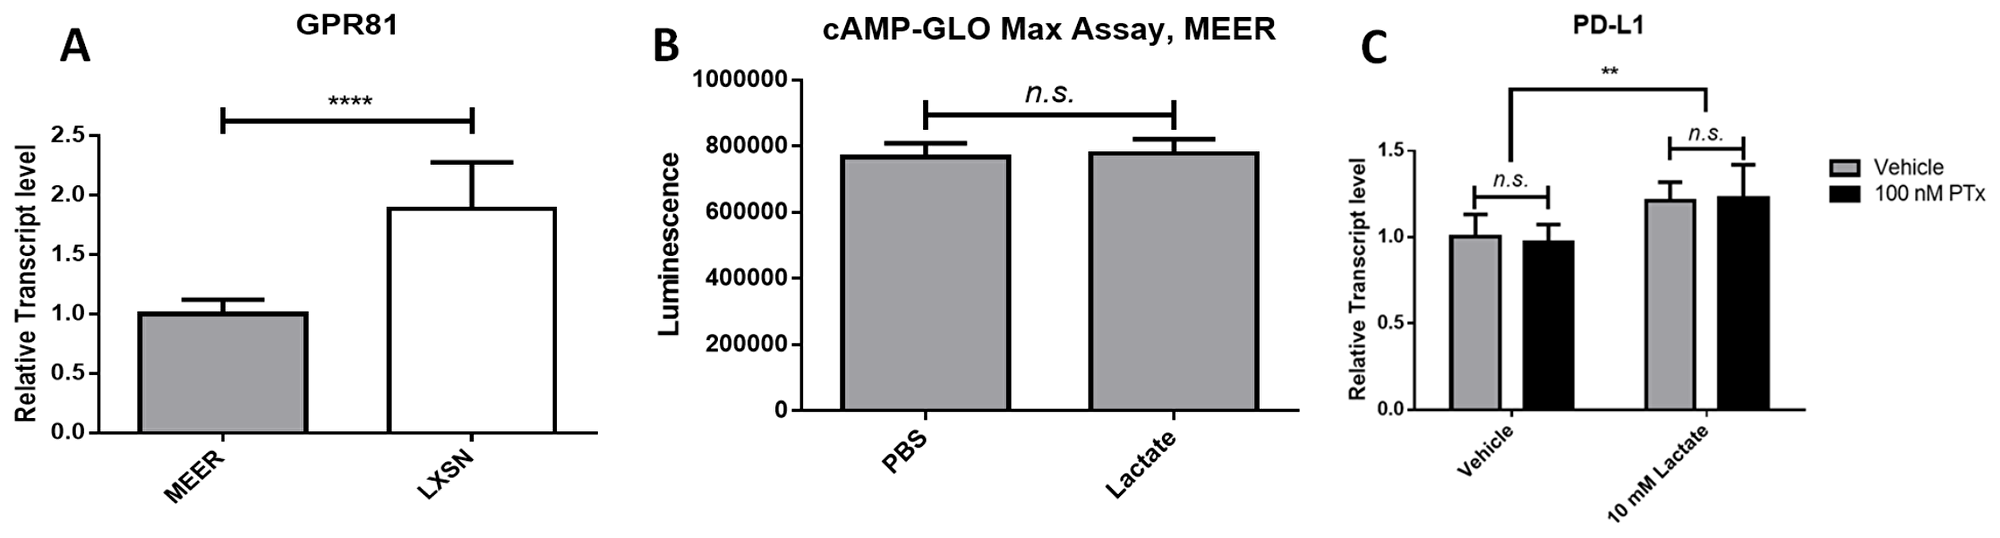 Lactate-induced PD-L1 in MEER cells does not depend on GPR81 signaling.